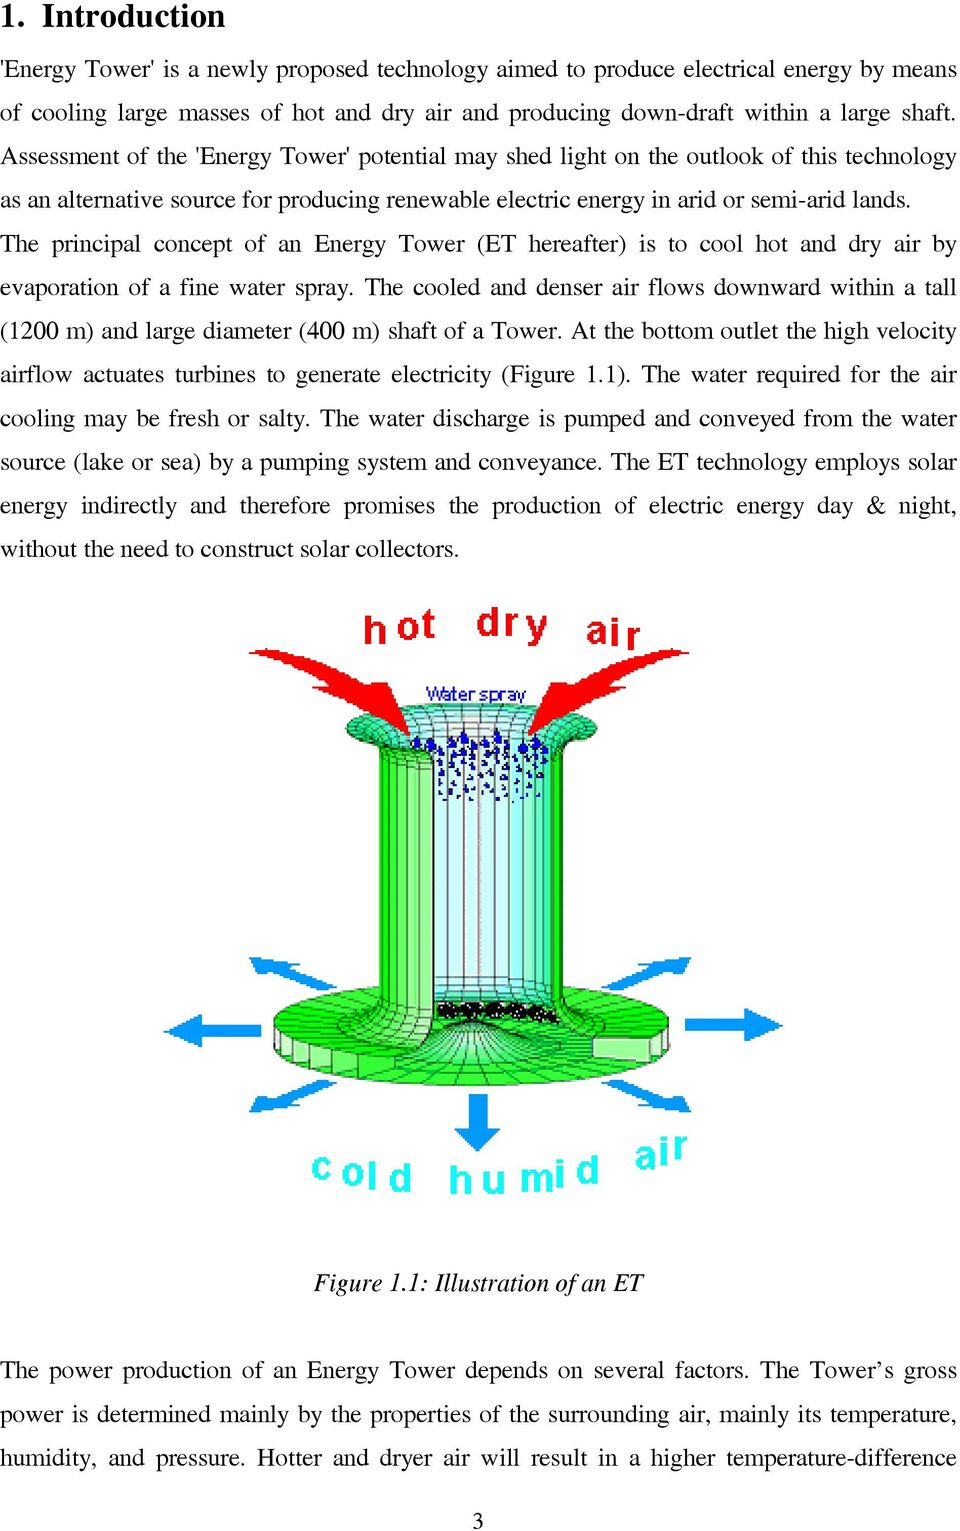 The principal concept of an Energy Tower (ET hereafter) is to cool hot and dry air by evaporation of a fine water spray.